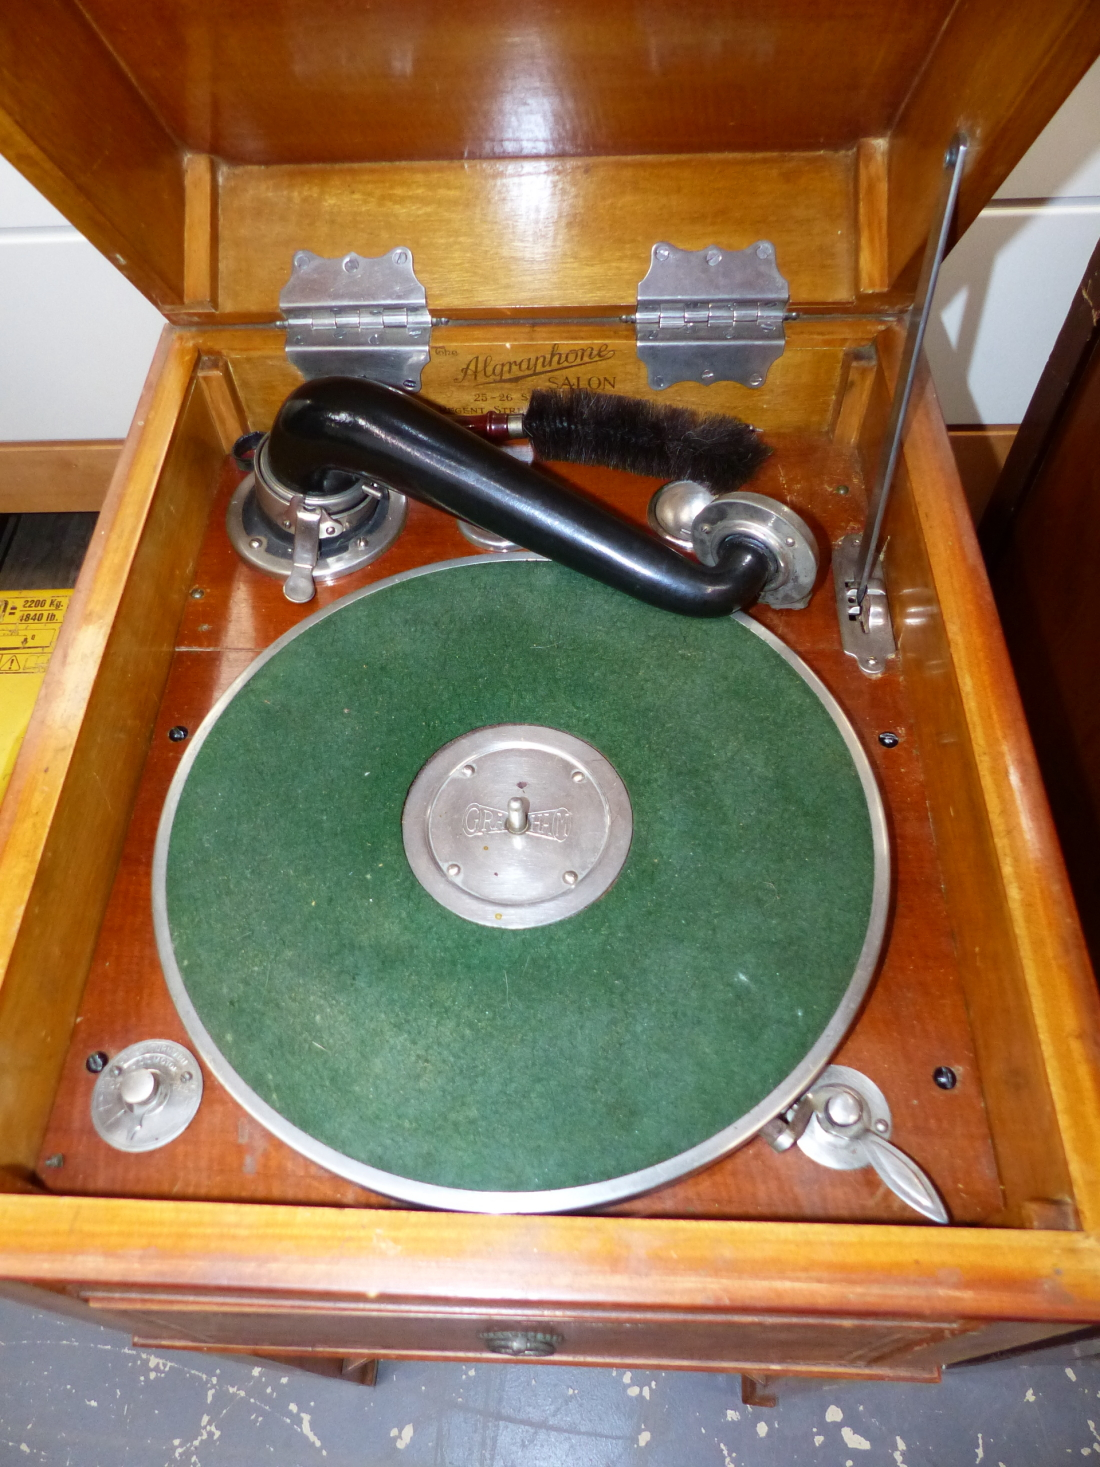 Lot 1101 - A GRAHAM ALGRAPHONE SALON WIND UP GRAMOPHONE IN BANDED SATINWOOD CASE WITH THE SOUND BOX BELOW THE